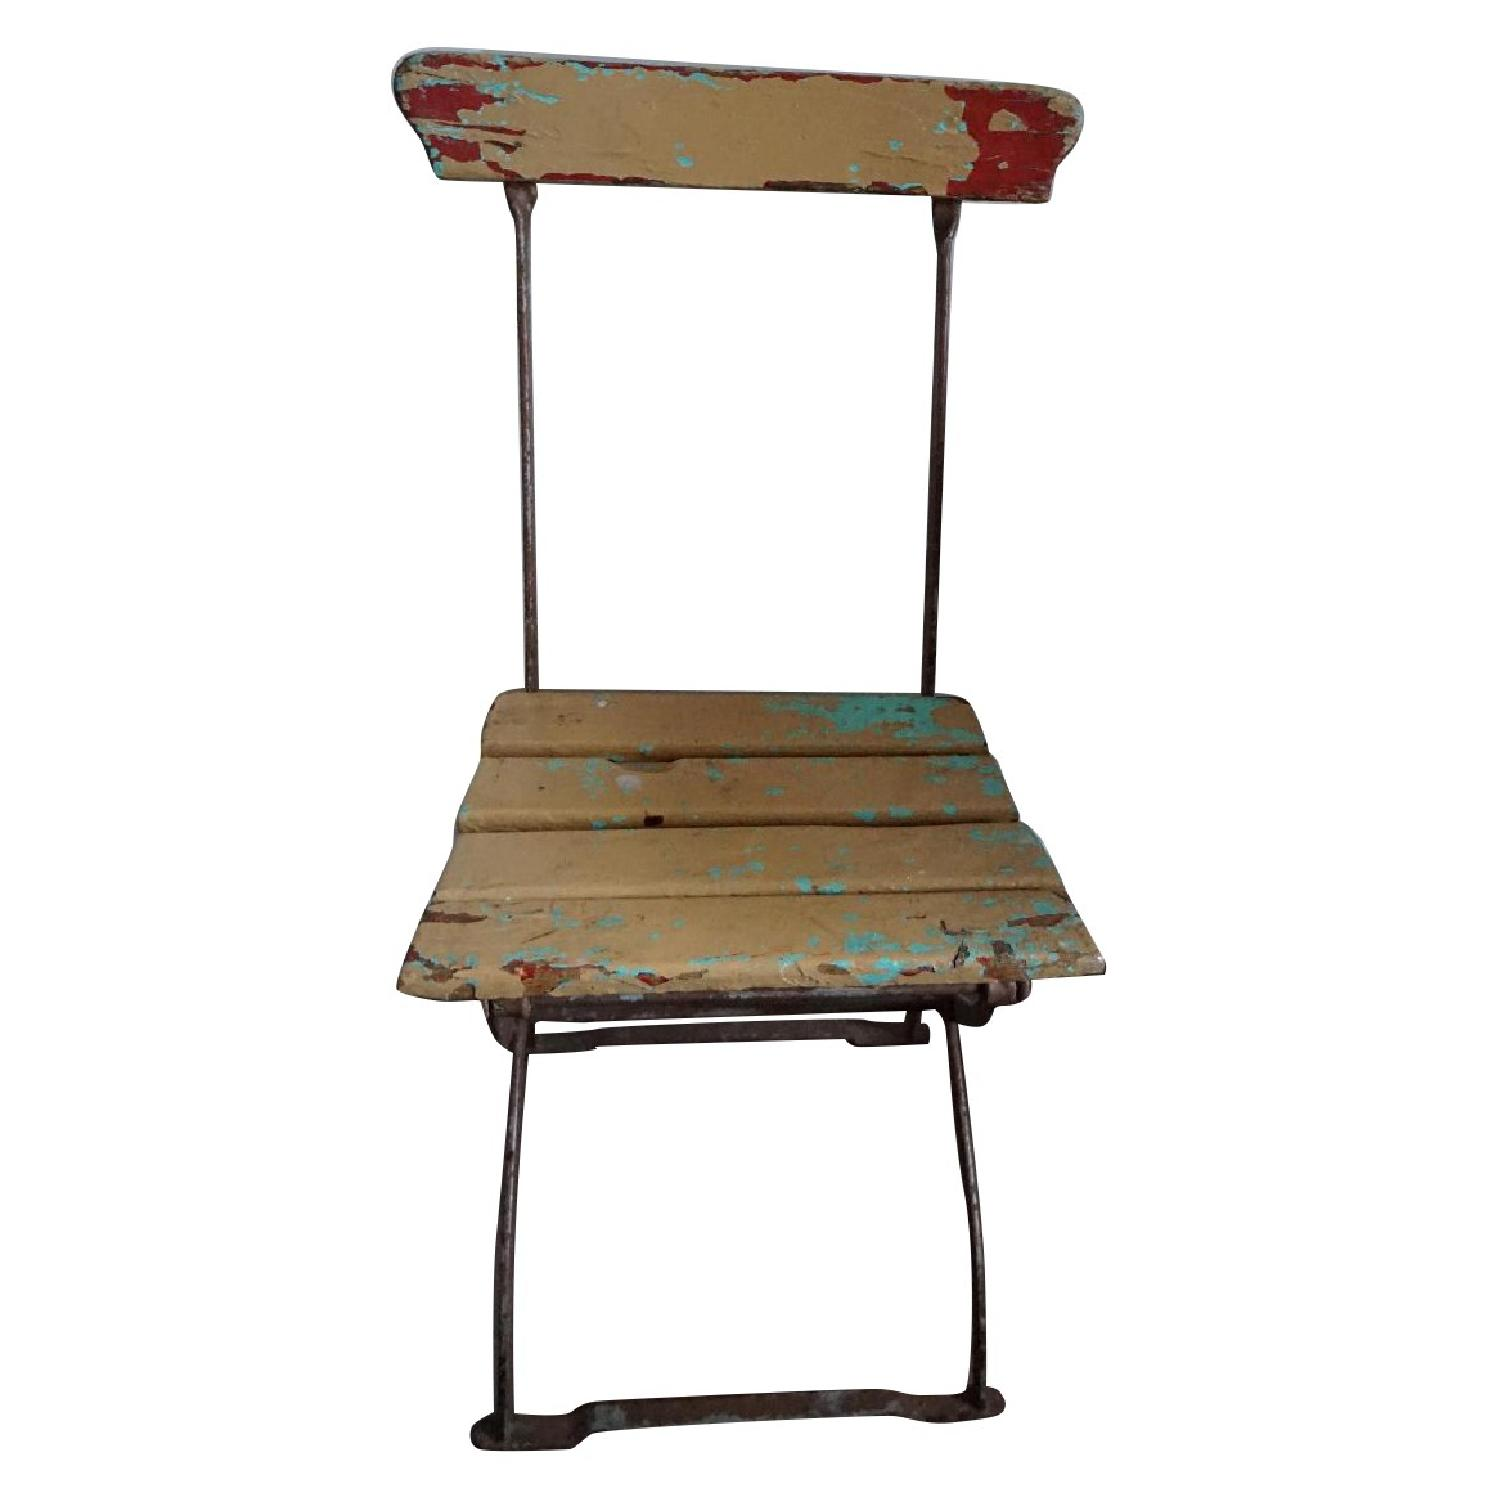 Antique European Folding Chair